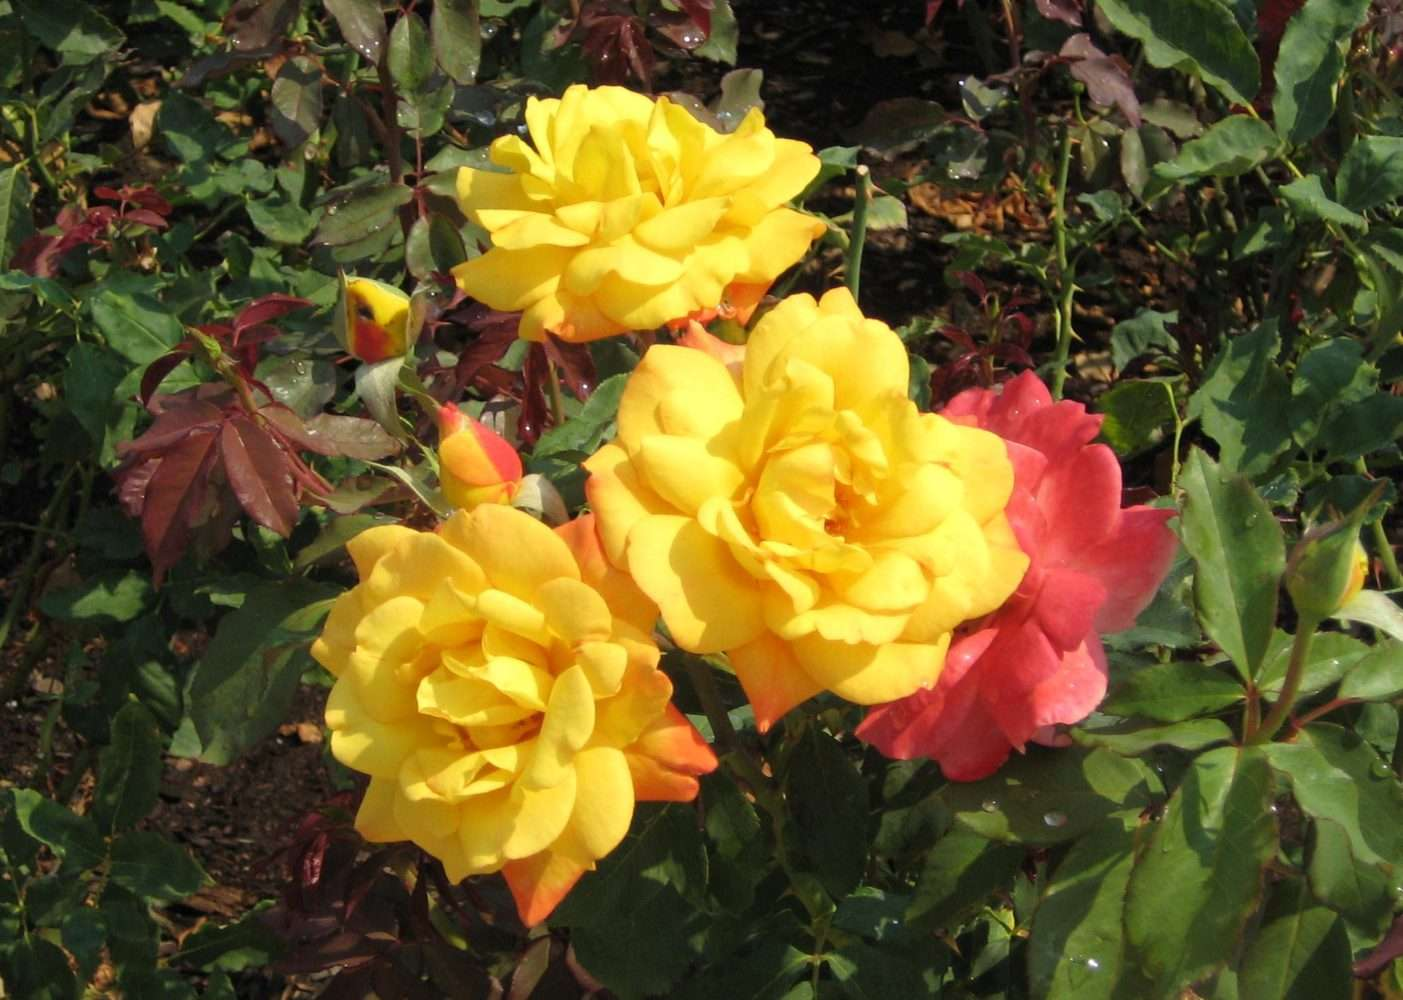 Blast From the Past: Tea roses, not rose tea